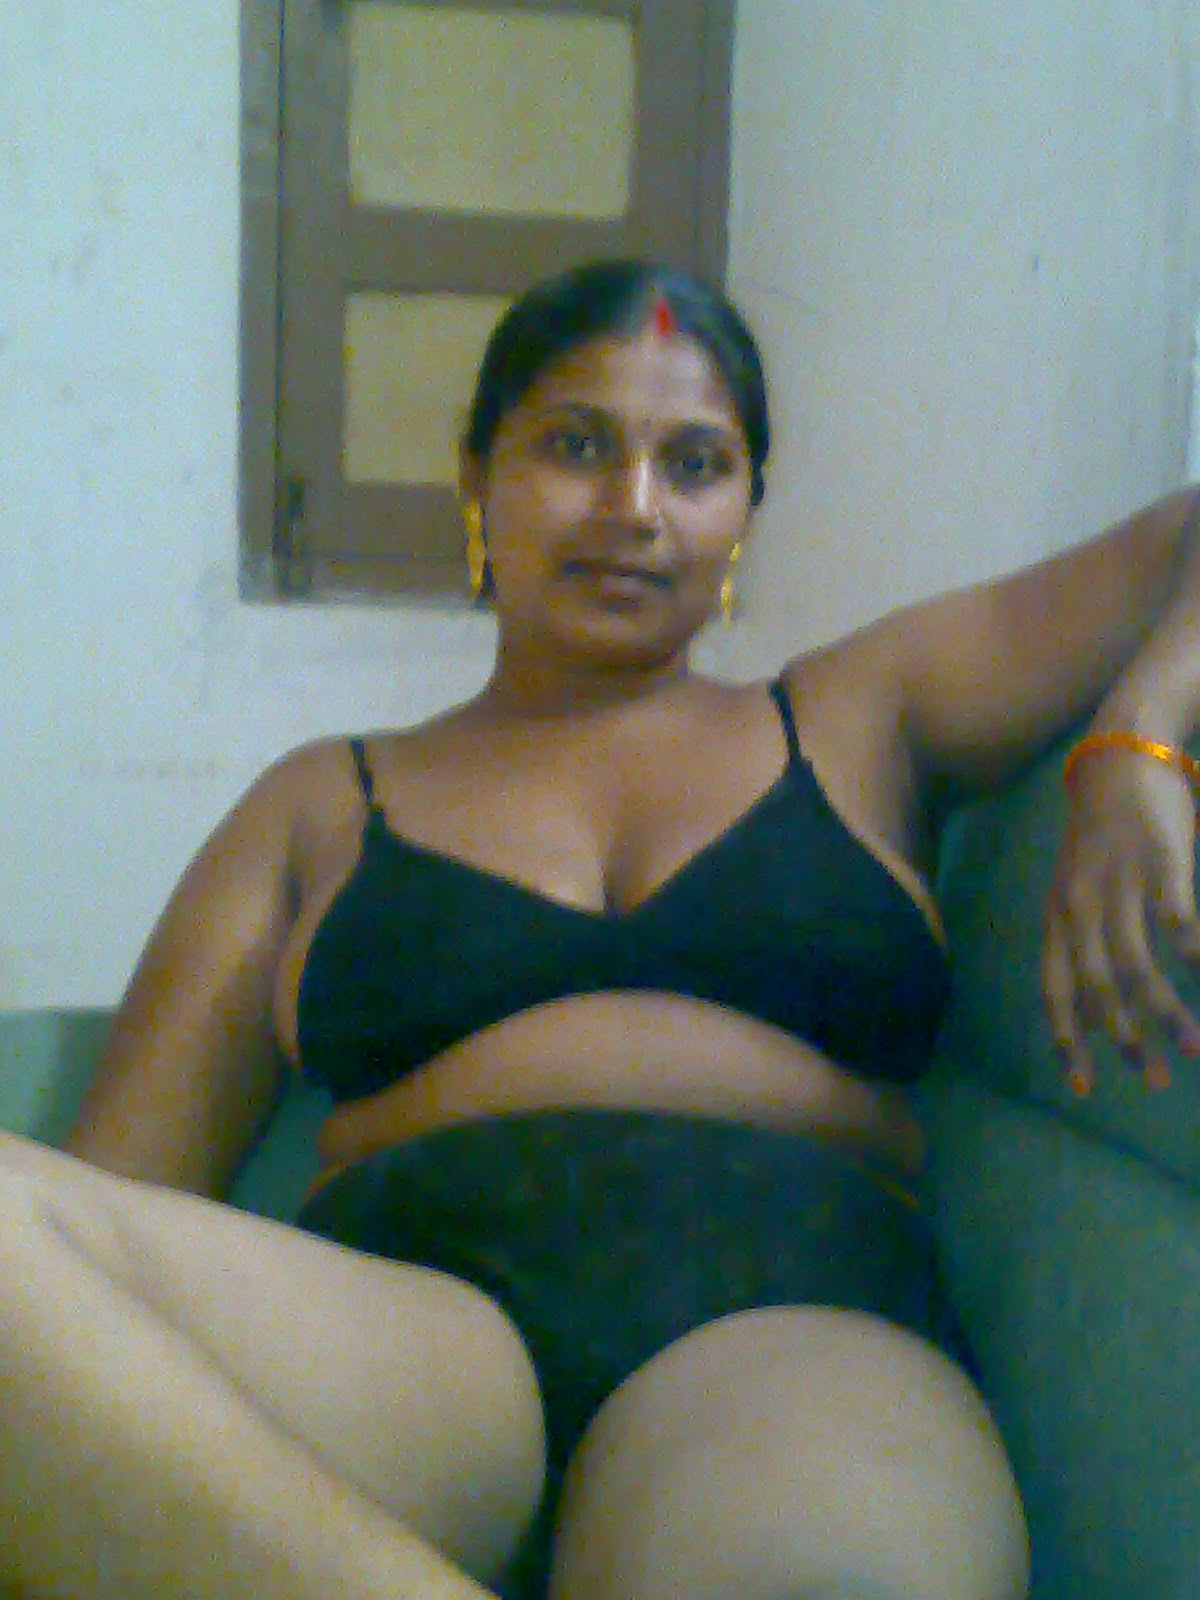 Tamil more sex nude